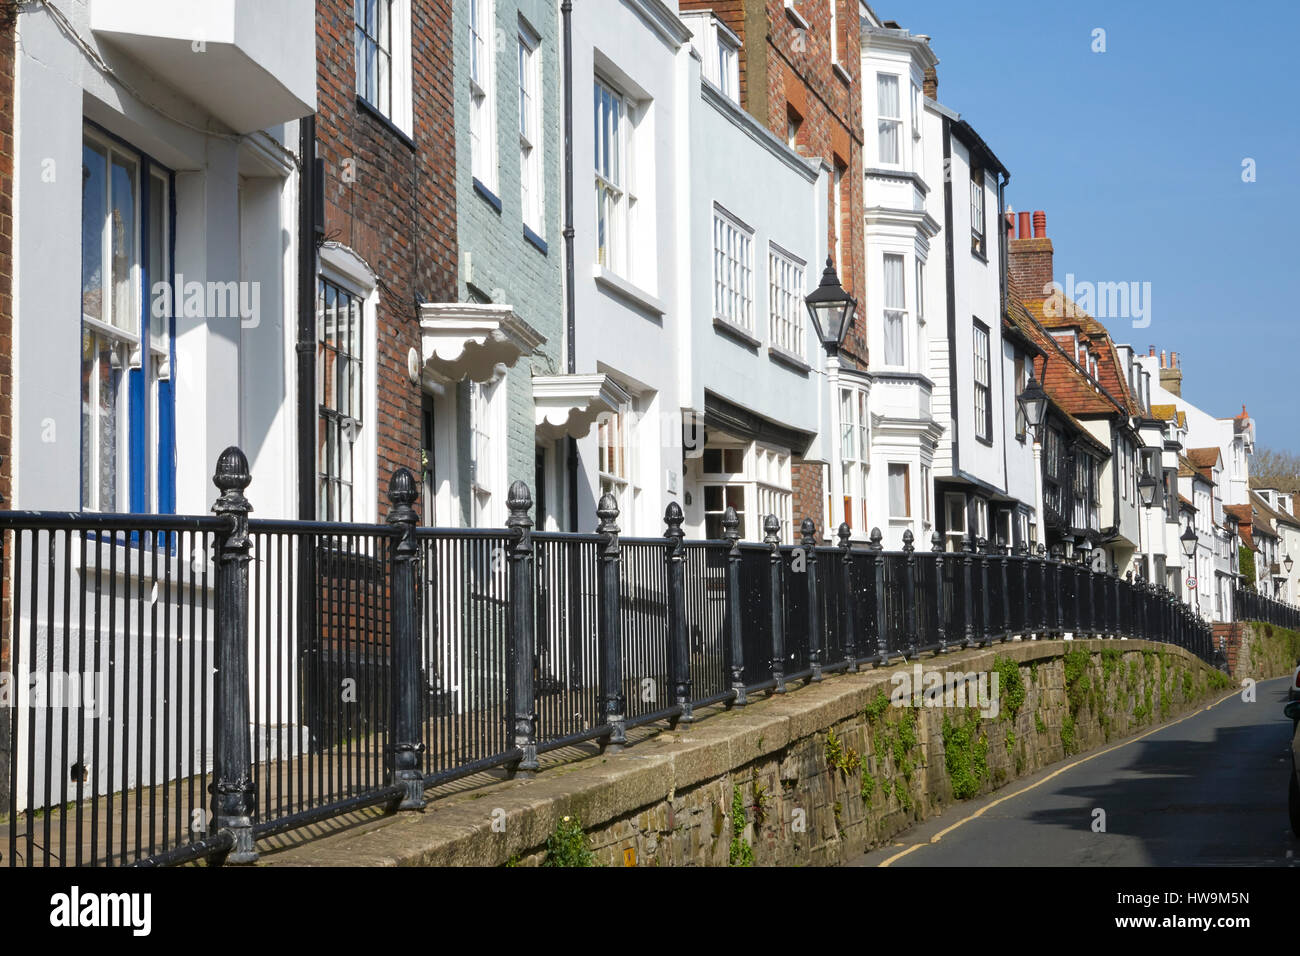 Hastings Old Town, Hastings High Street, quaint houses on the raised pavement, East Sussex, England, Britain, UK, - Stock Image